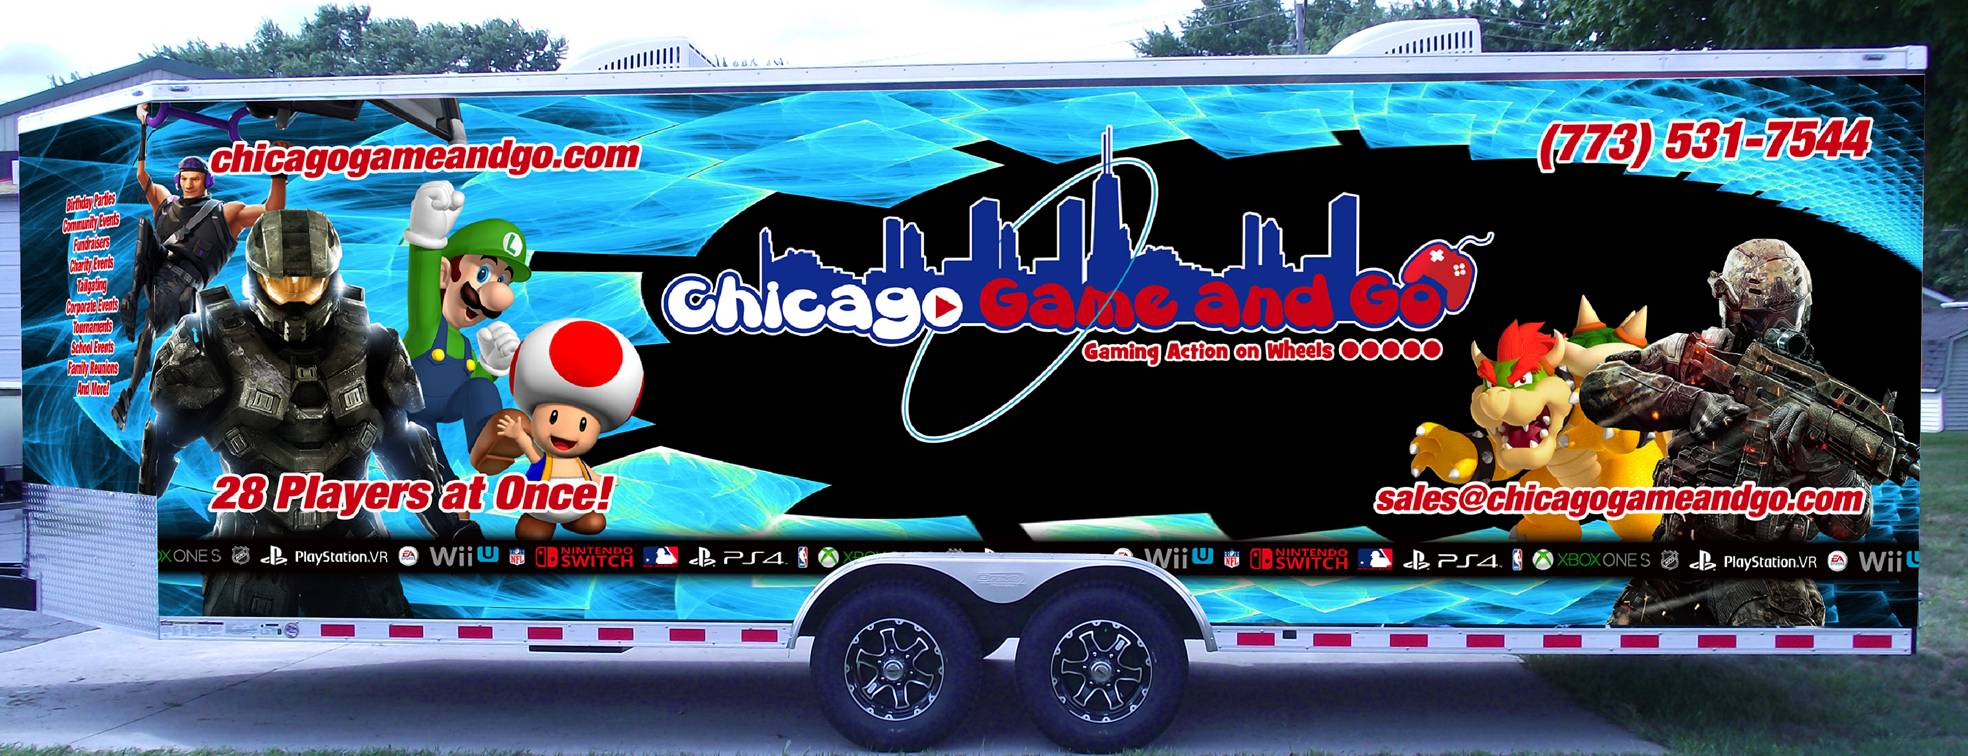 Video game truck for video game parties in Chicago, Illinois